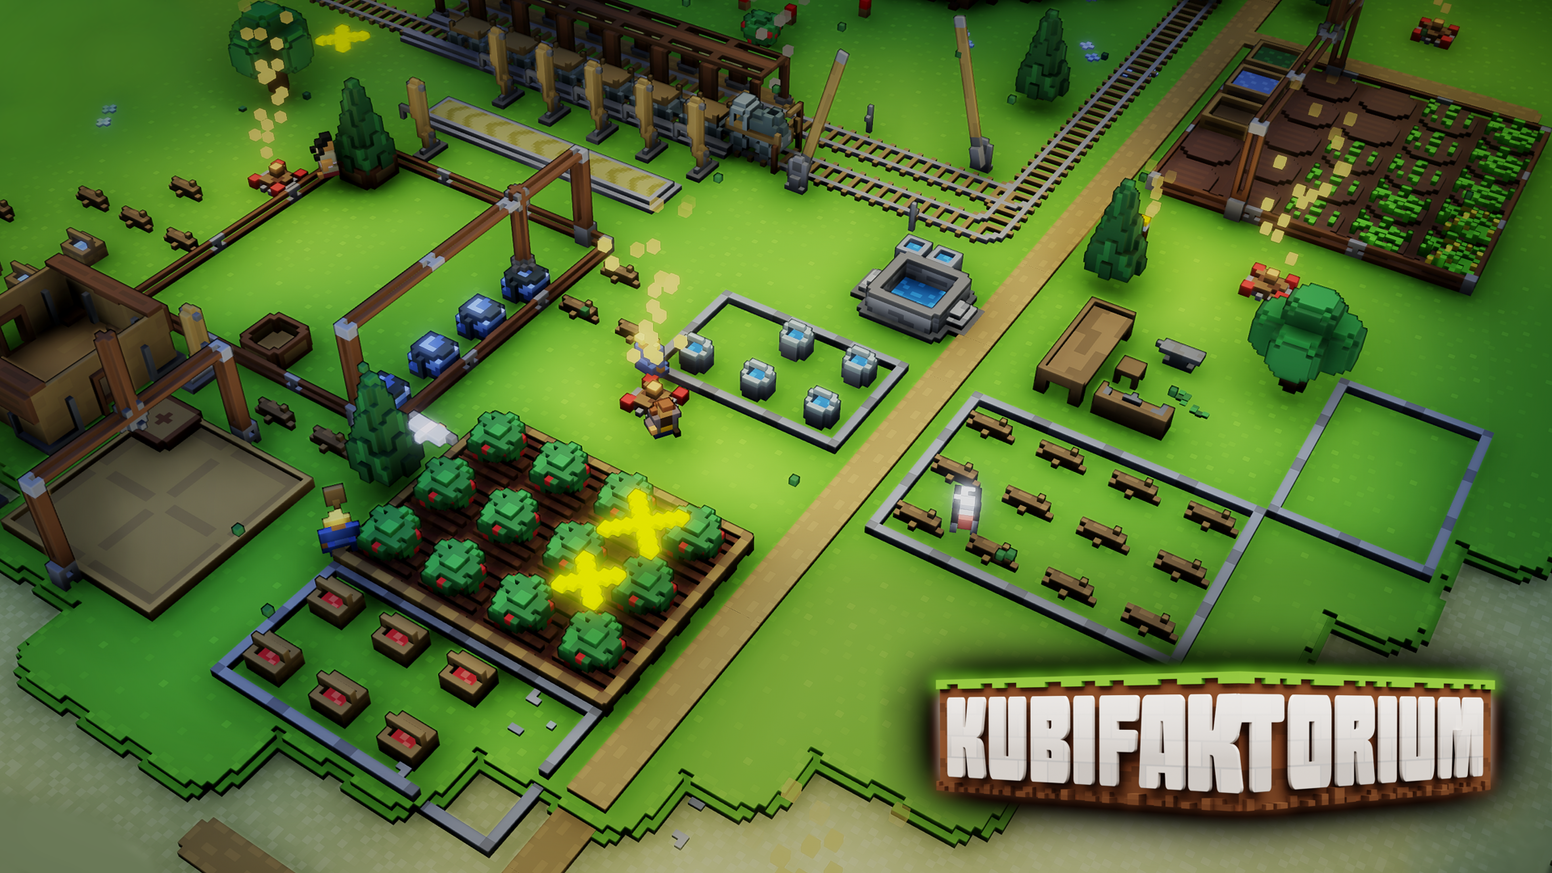 Build and manage a colony, use automation & transport systems and explore different islands in Kubifaktorium.